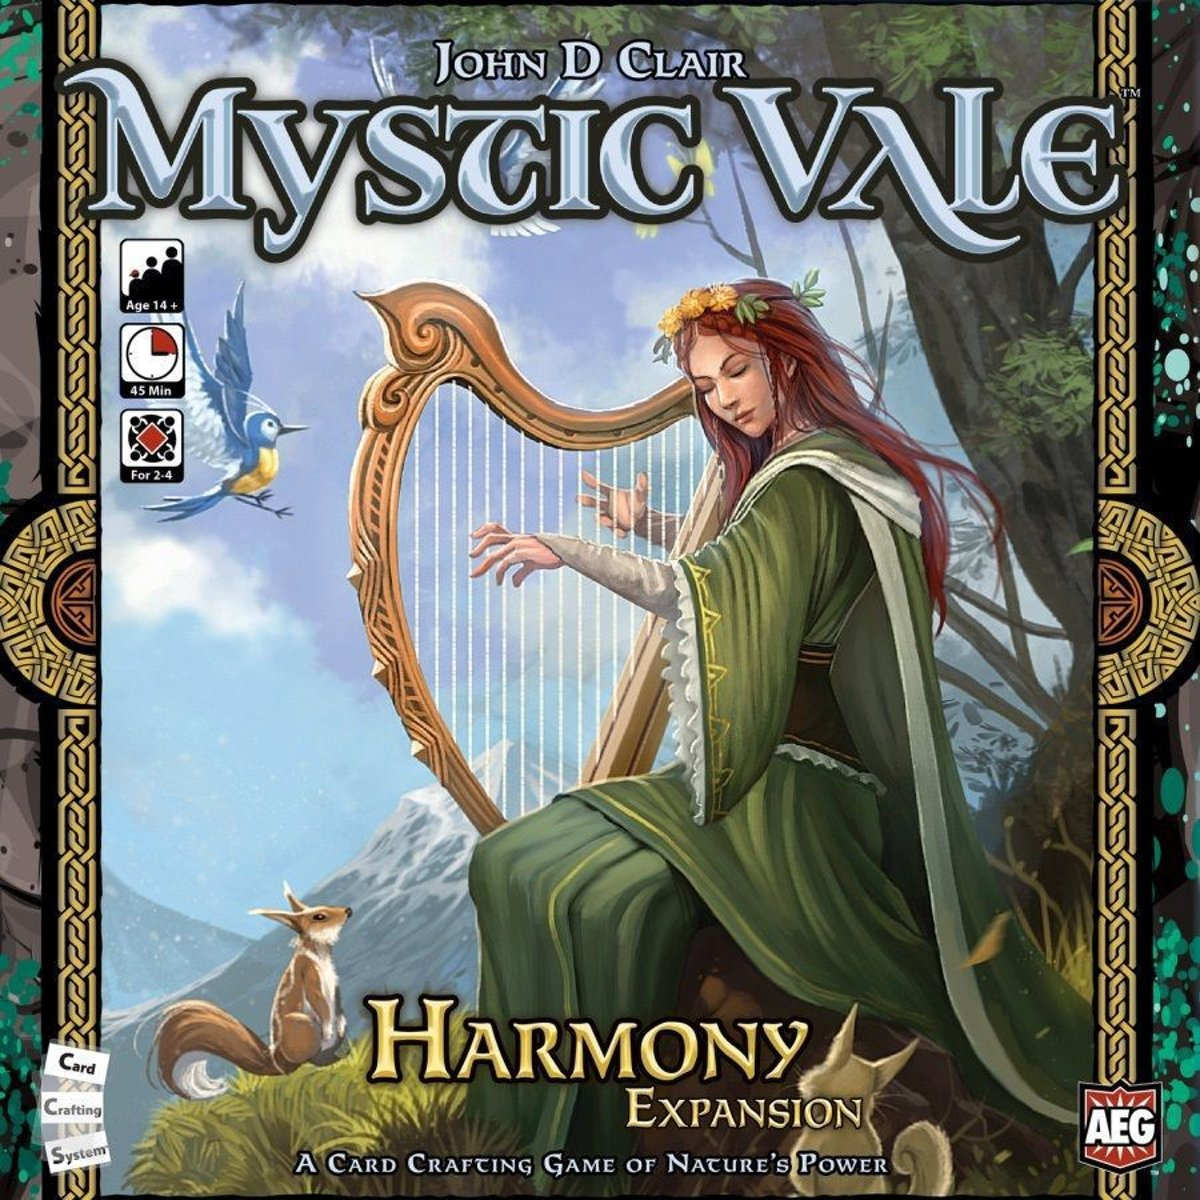 Mystic Vale - Harmony Expansion